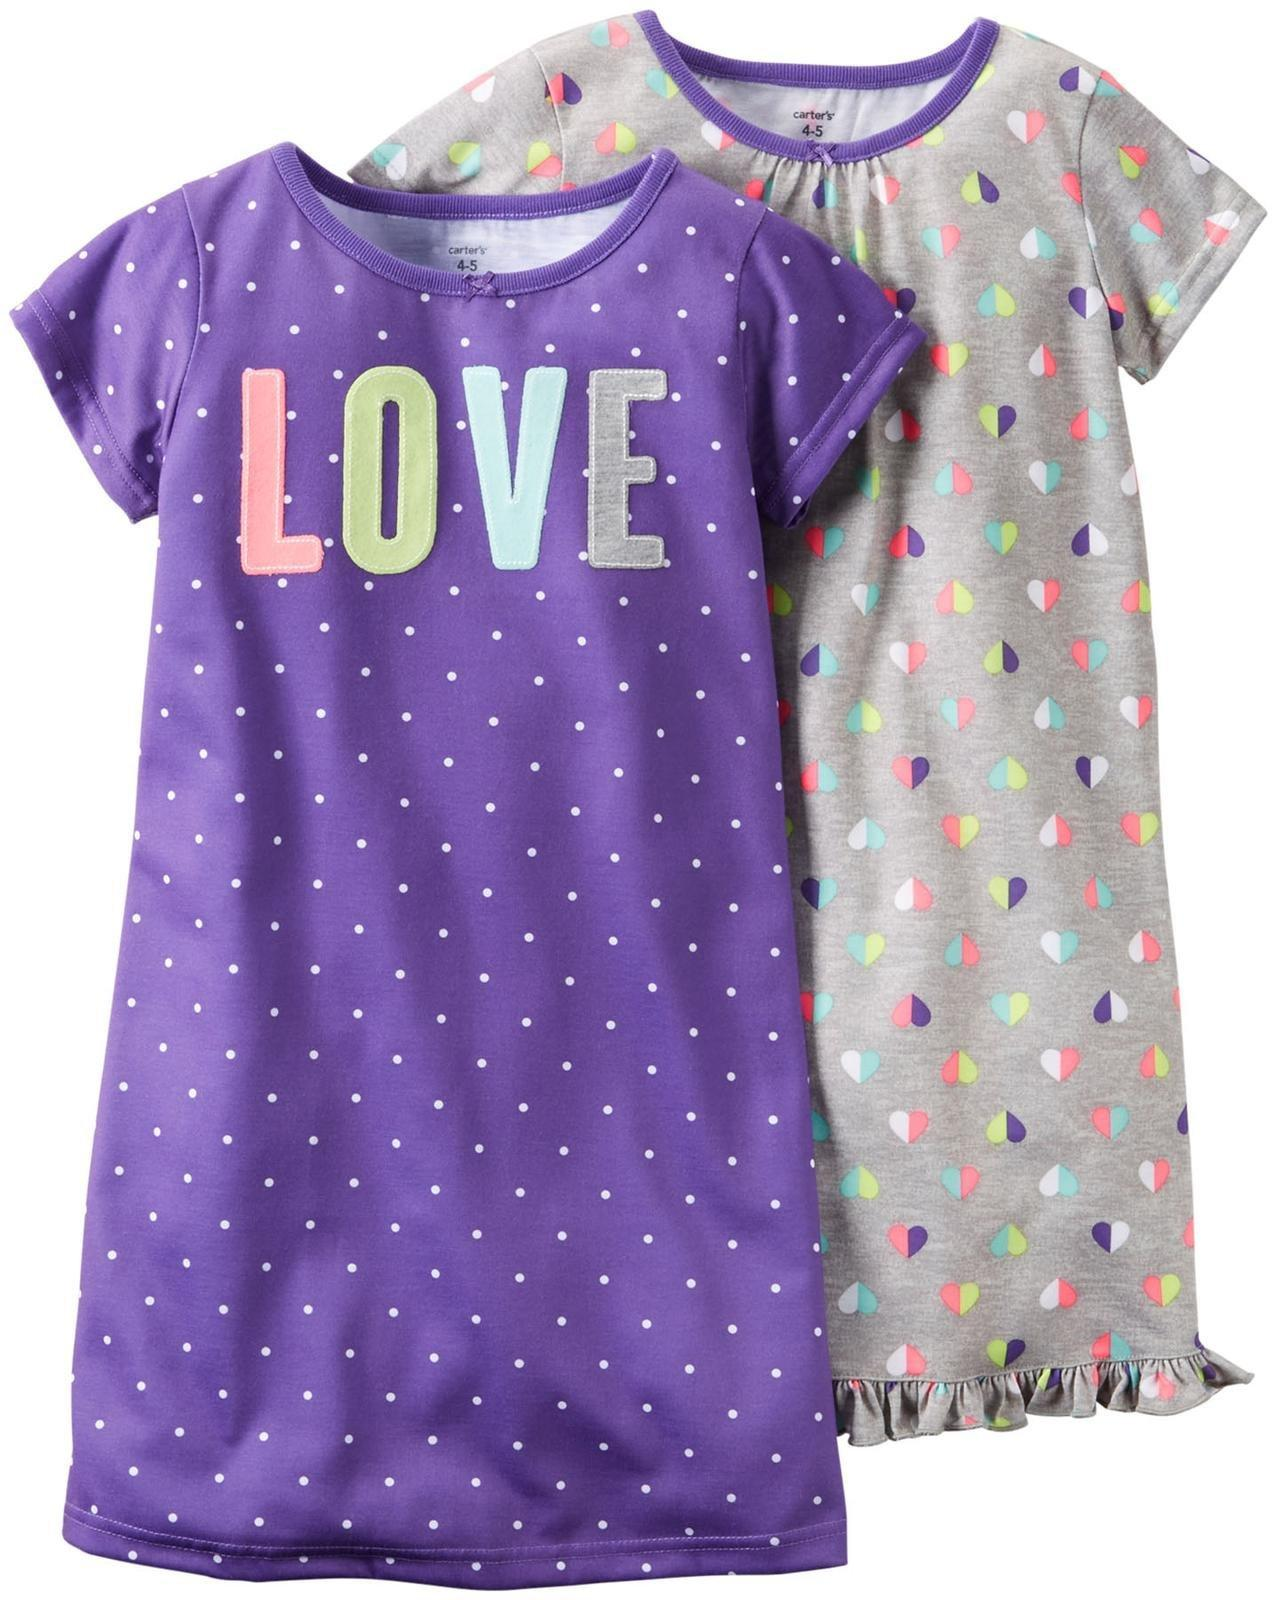 Print Gowns (2 Pack), Dots/Hearts